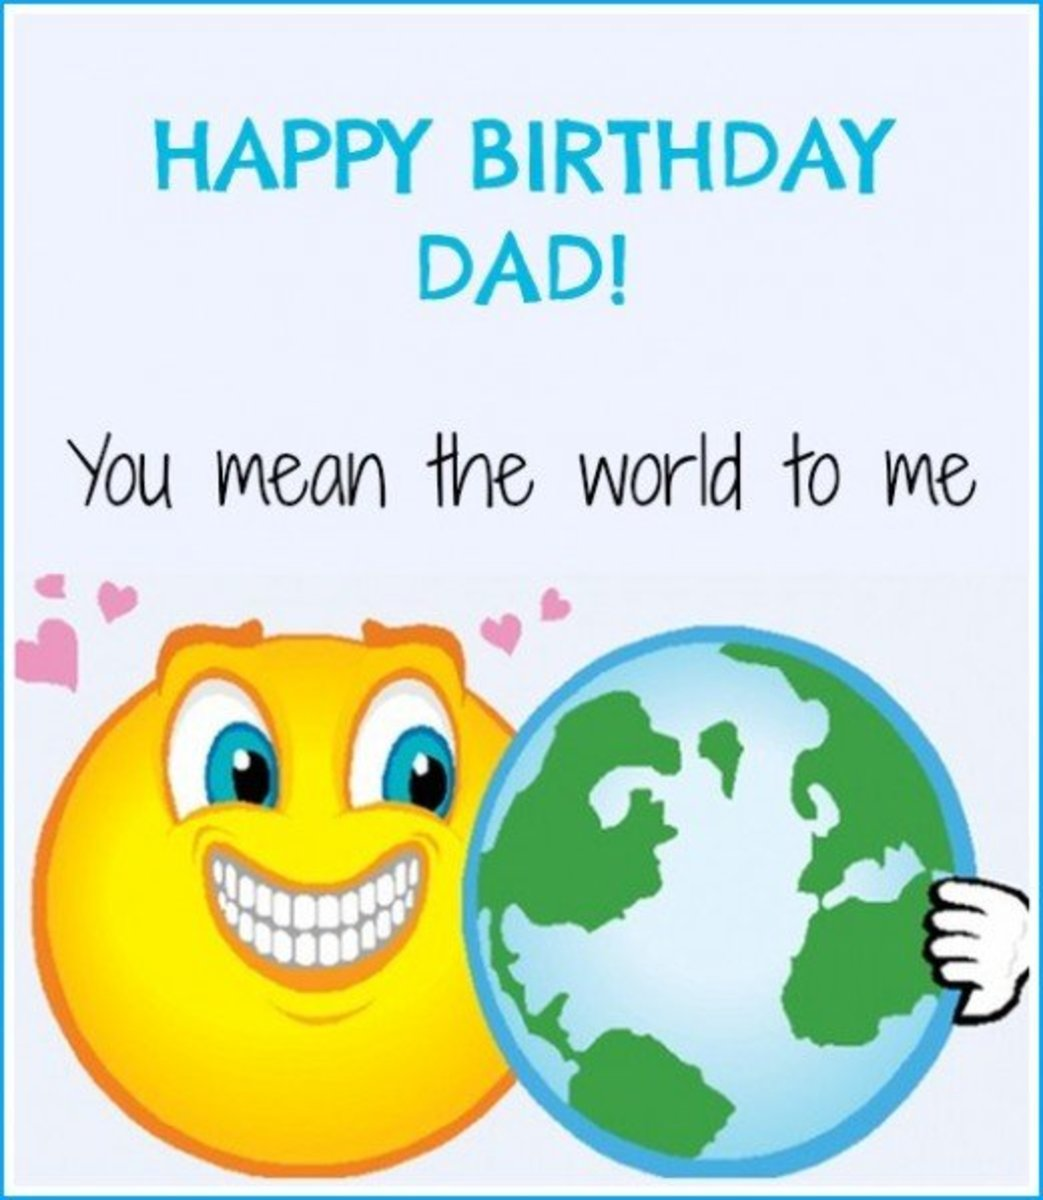 HAPPY BIRTHDAY DAD Free Birthday Greetings, Cards  Messages